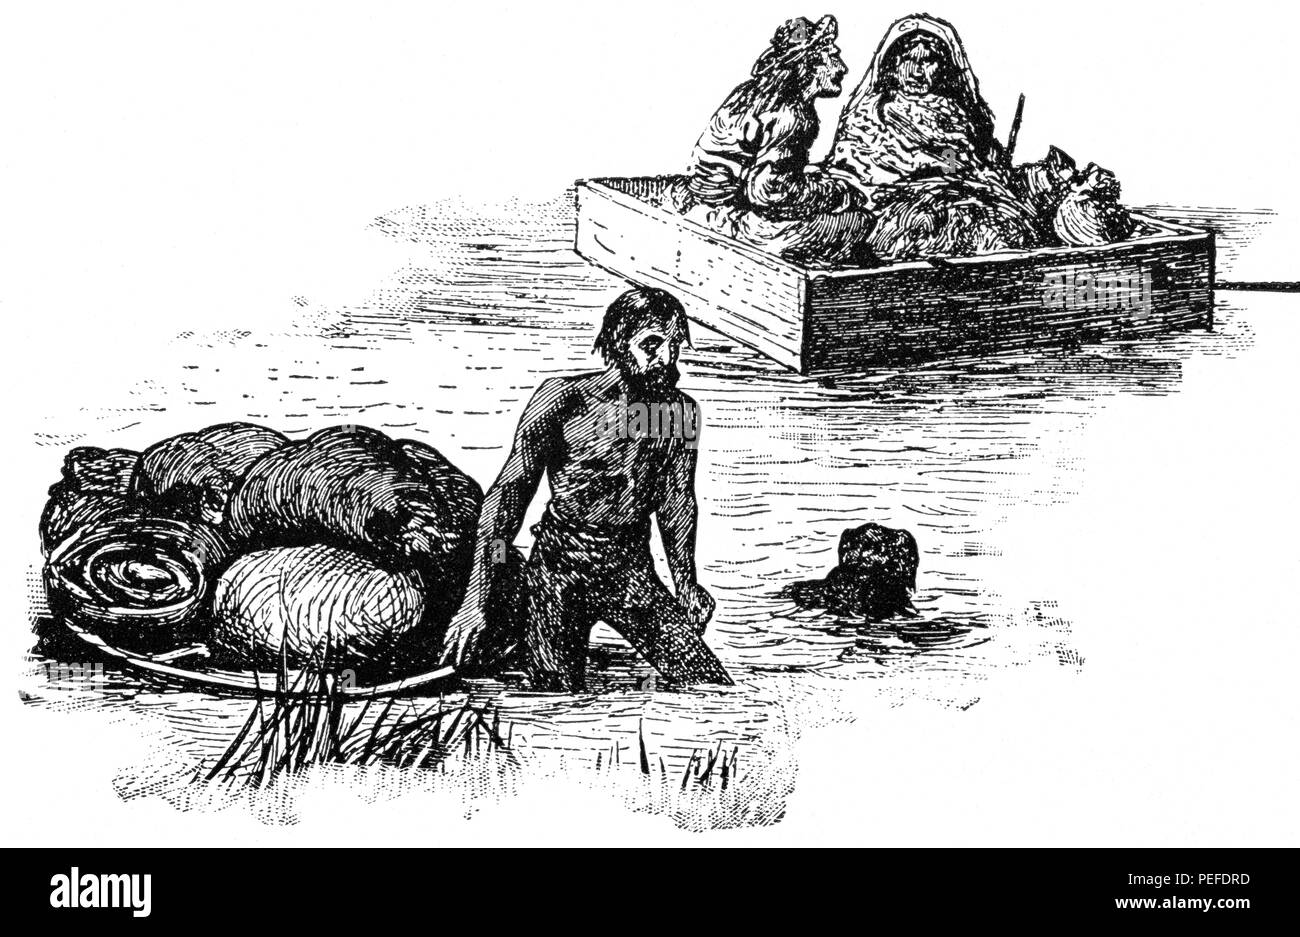 Crossing the Red River, Manitoba, Canada, Illustration, Classical Portfolio of Primitive Carriers, by Marshall M. Kirman, World Railway Publ. Co., Illustration, 1895 - Stock Image